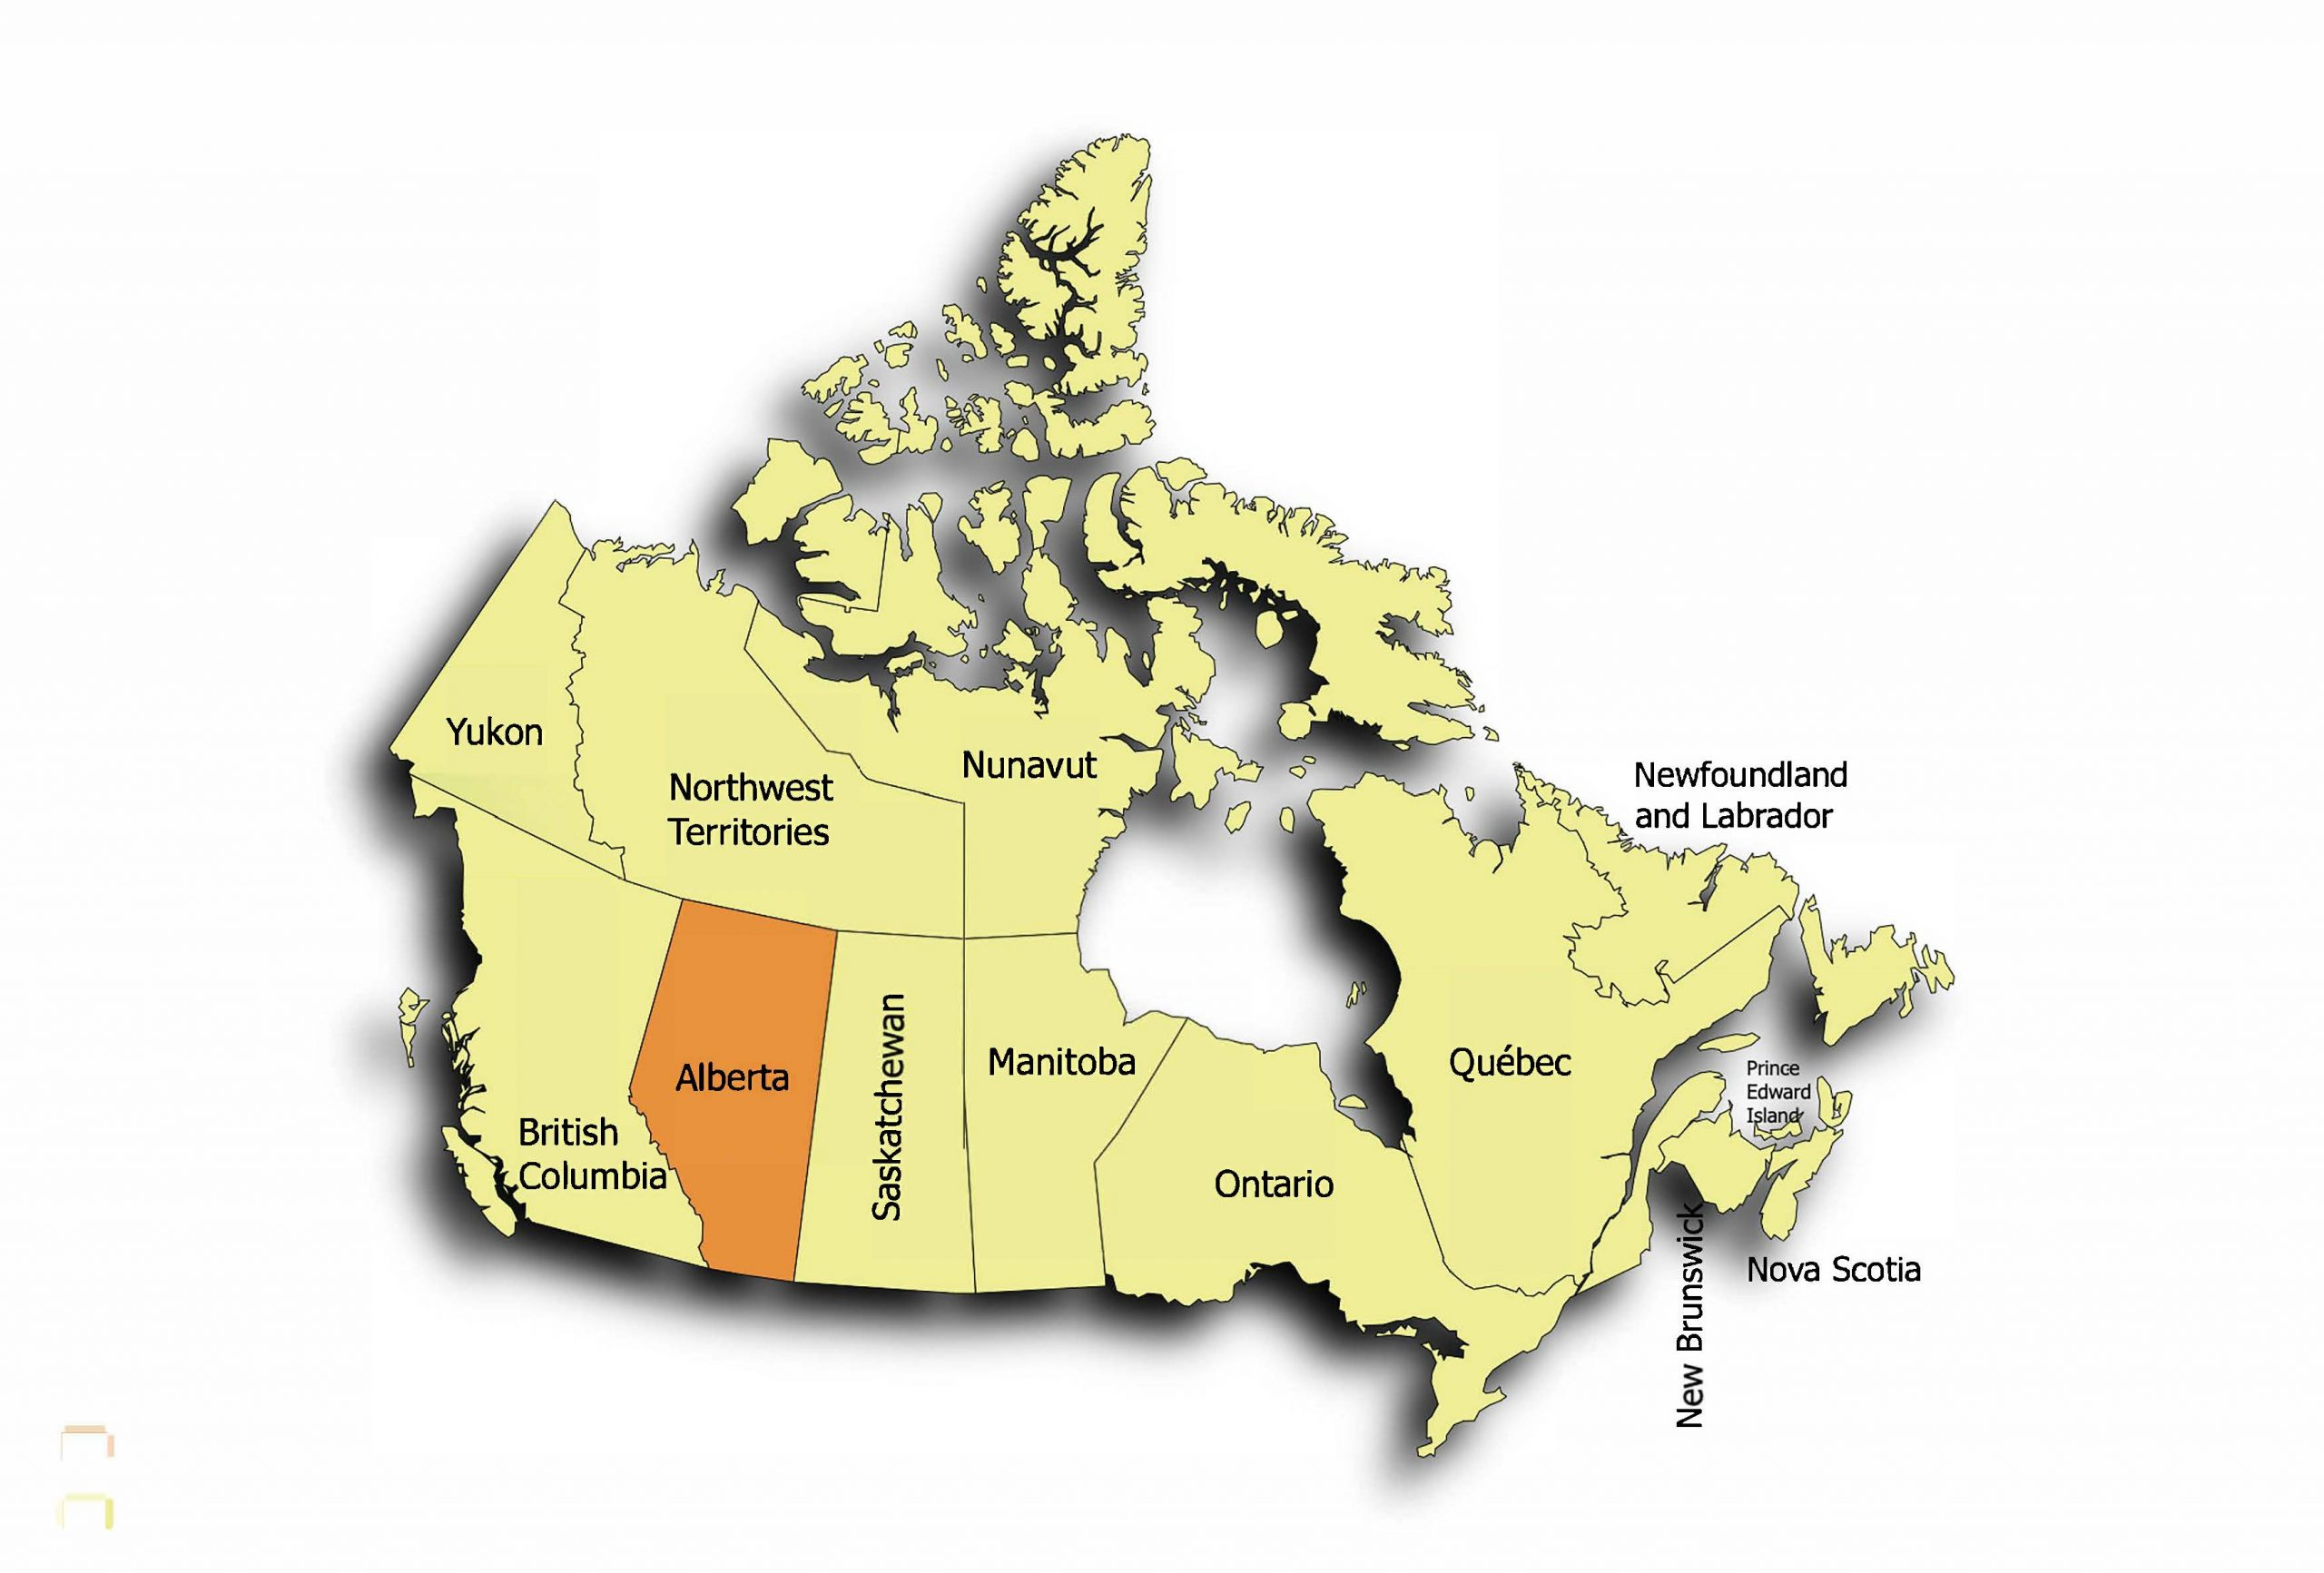 The map of Canada in yellow with the Province of Alberta highlighted in Orange